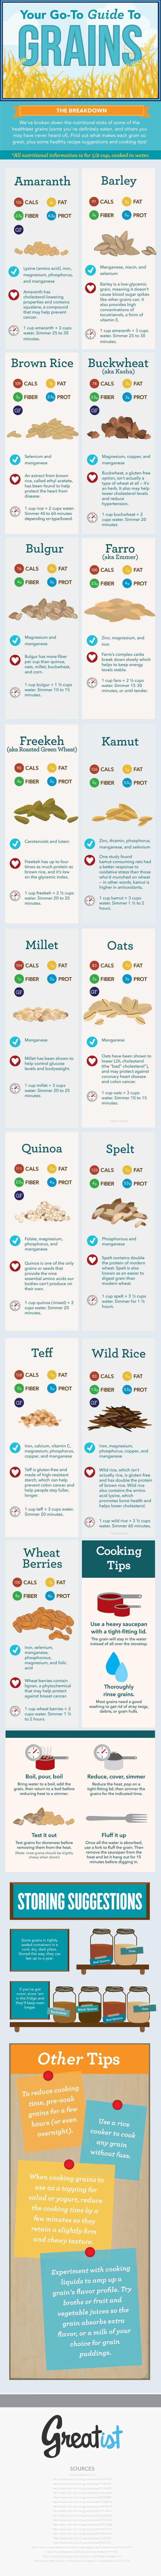 Do Oats Have Gluten? Oats are naturally gluten free and are not related to gluten-containing grains like wheat, rye and barley…